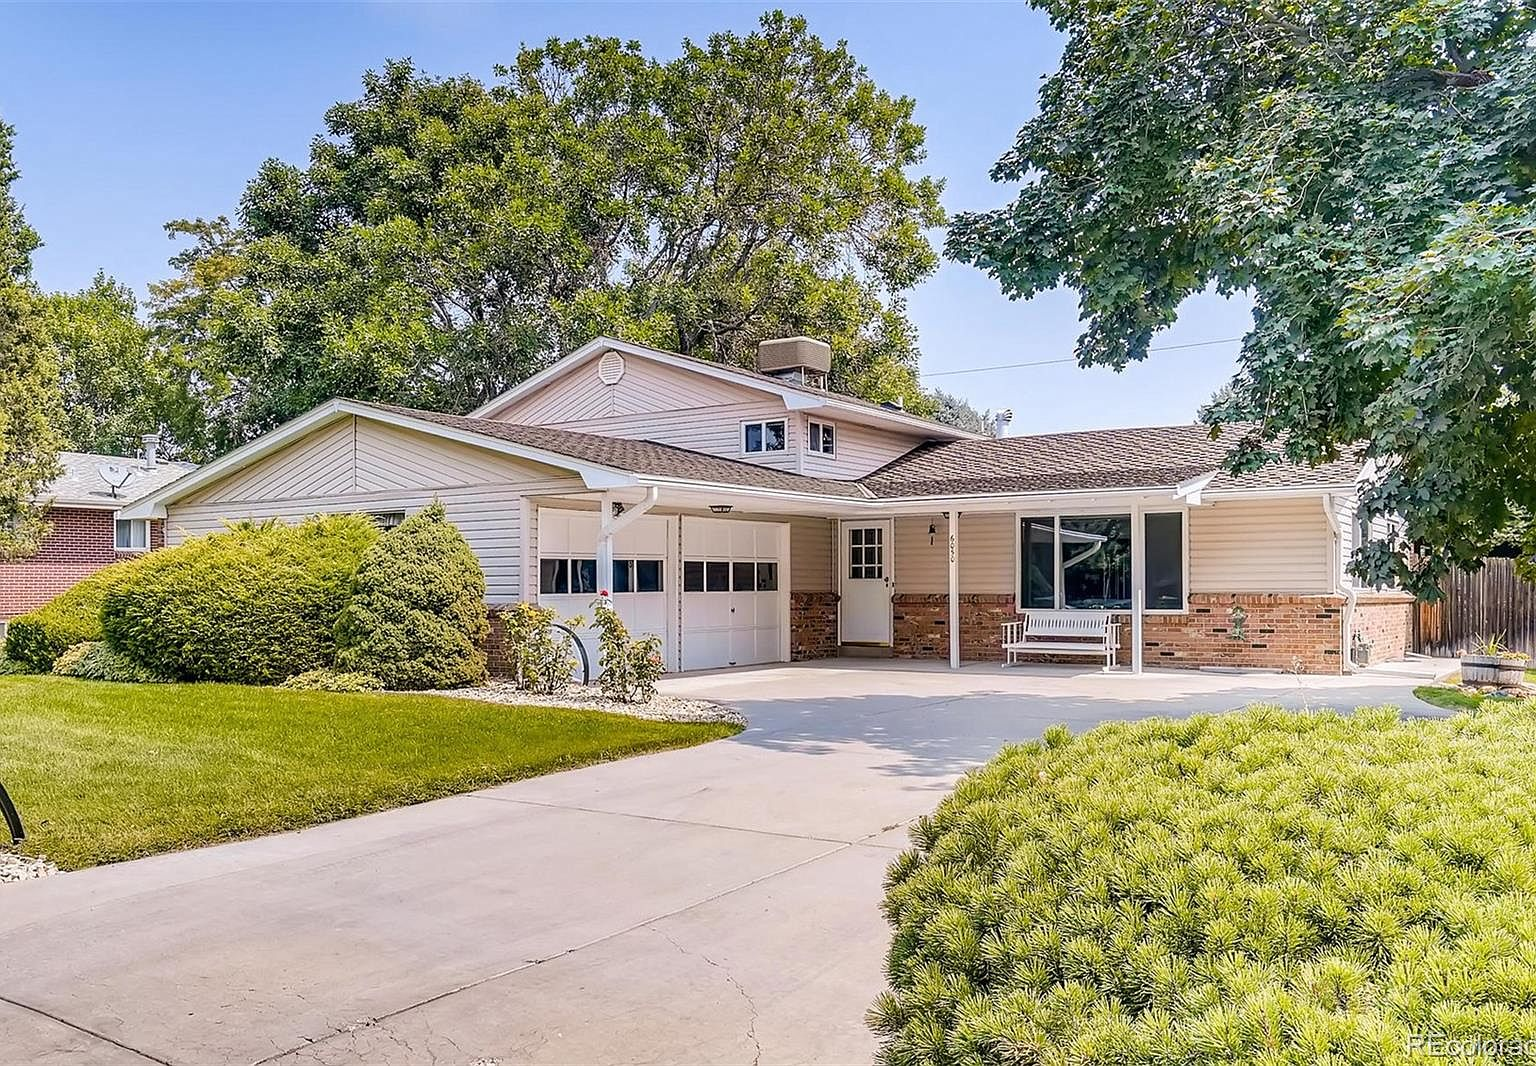 6050 Wright St Arvada Co 80004 Zillow